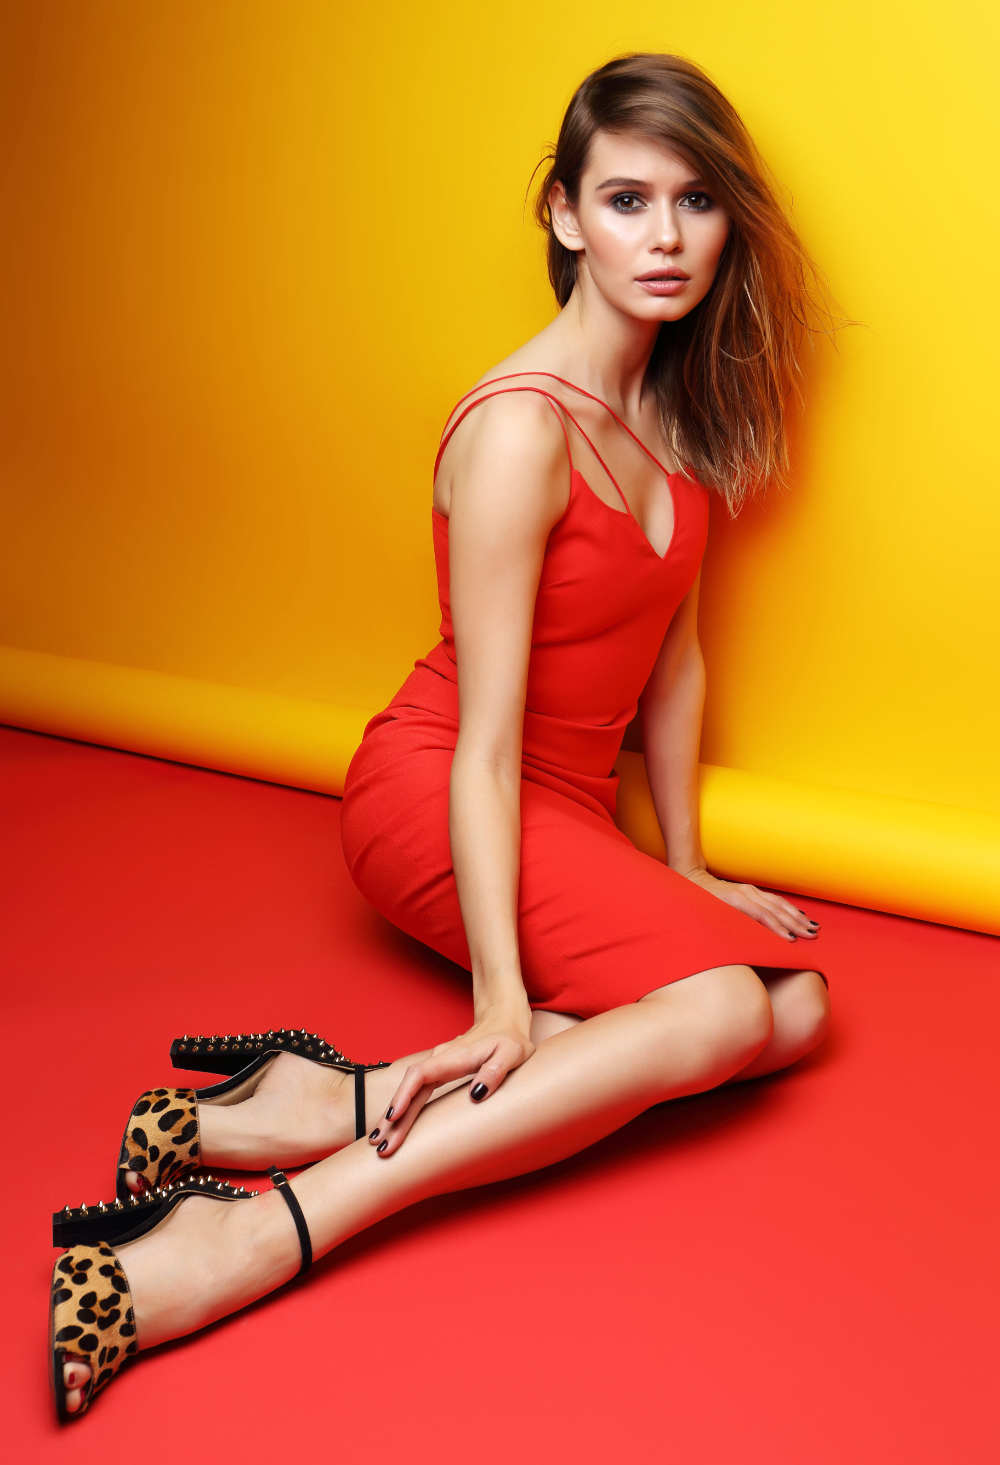 Portrait of brunette woman wearing red mini dress with leopard print shoes over yellow and red background.